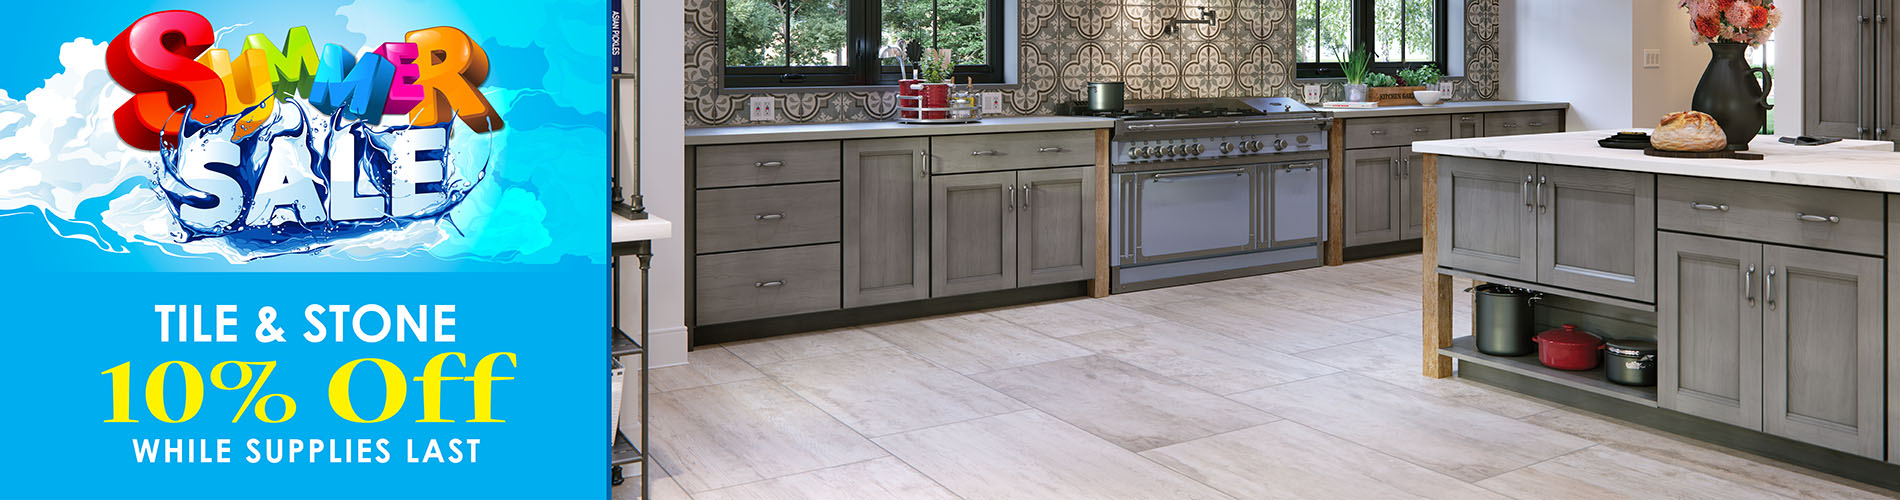 10% OFF TILE & STONE